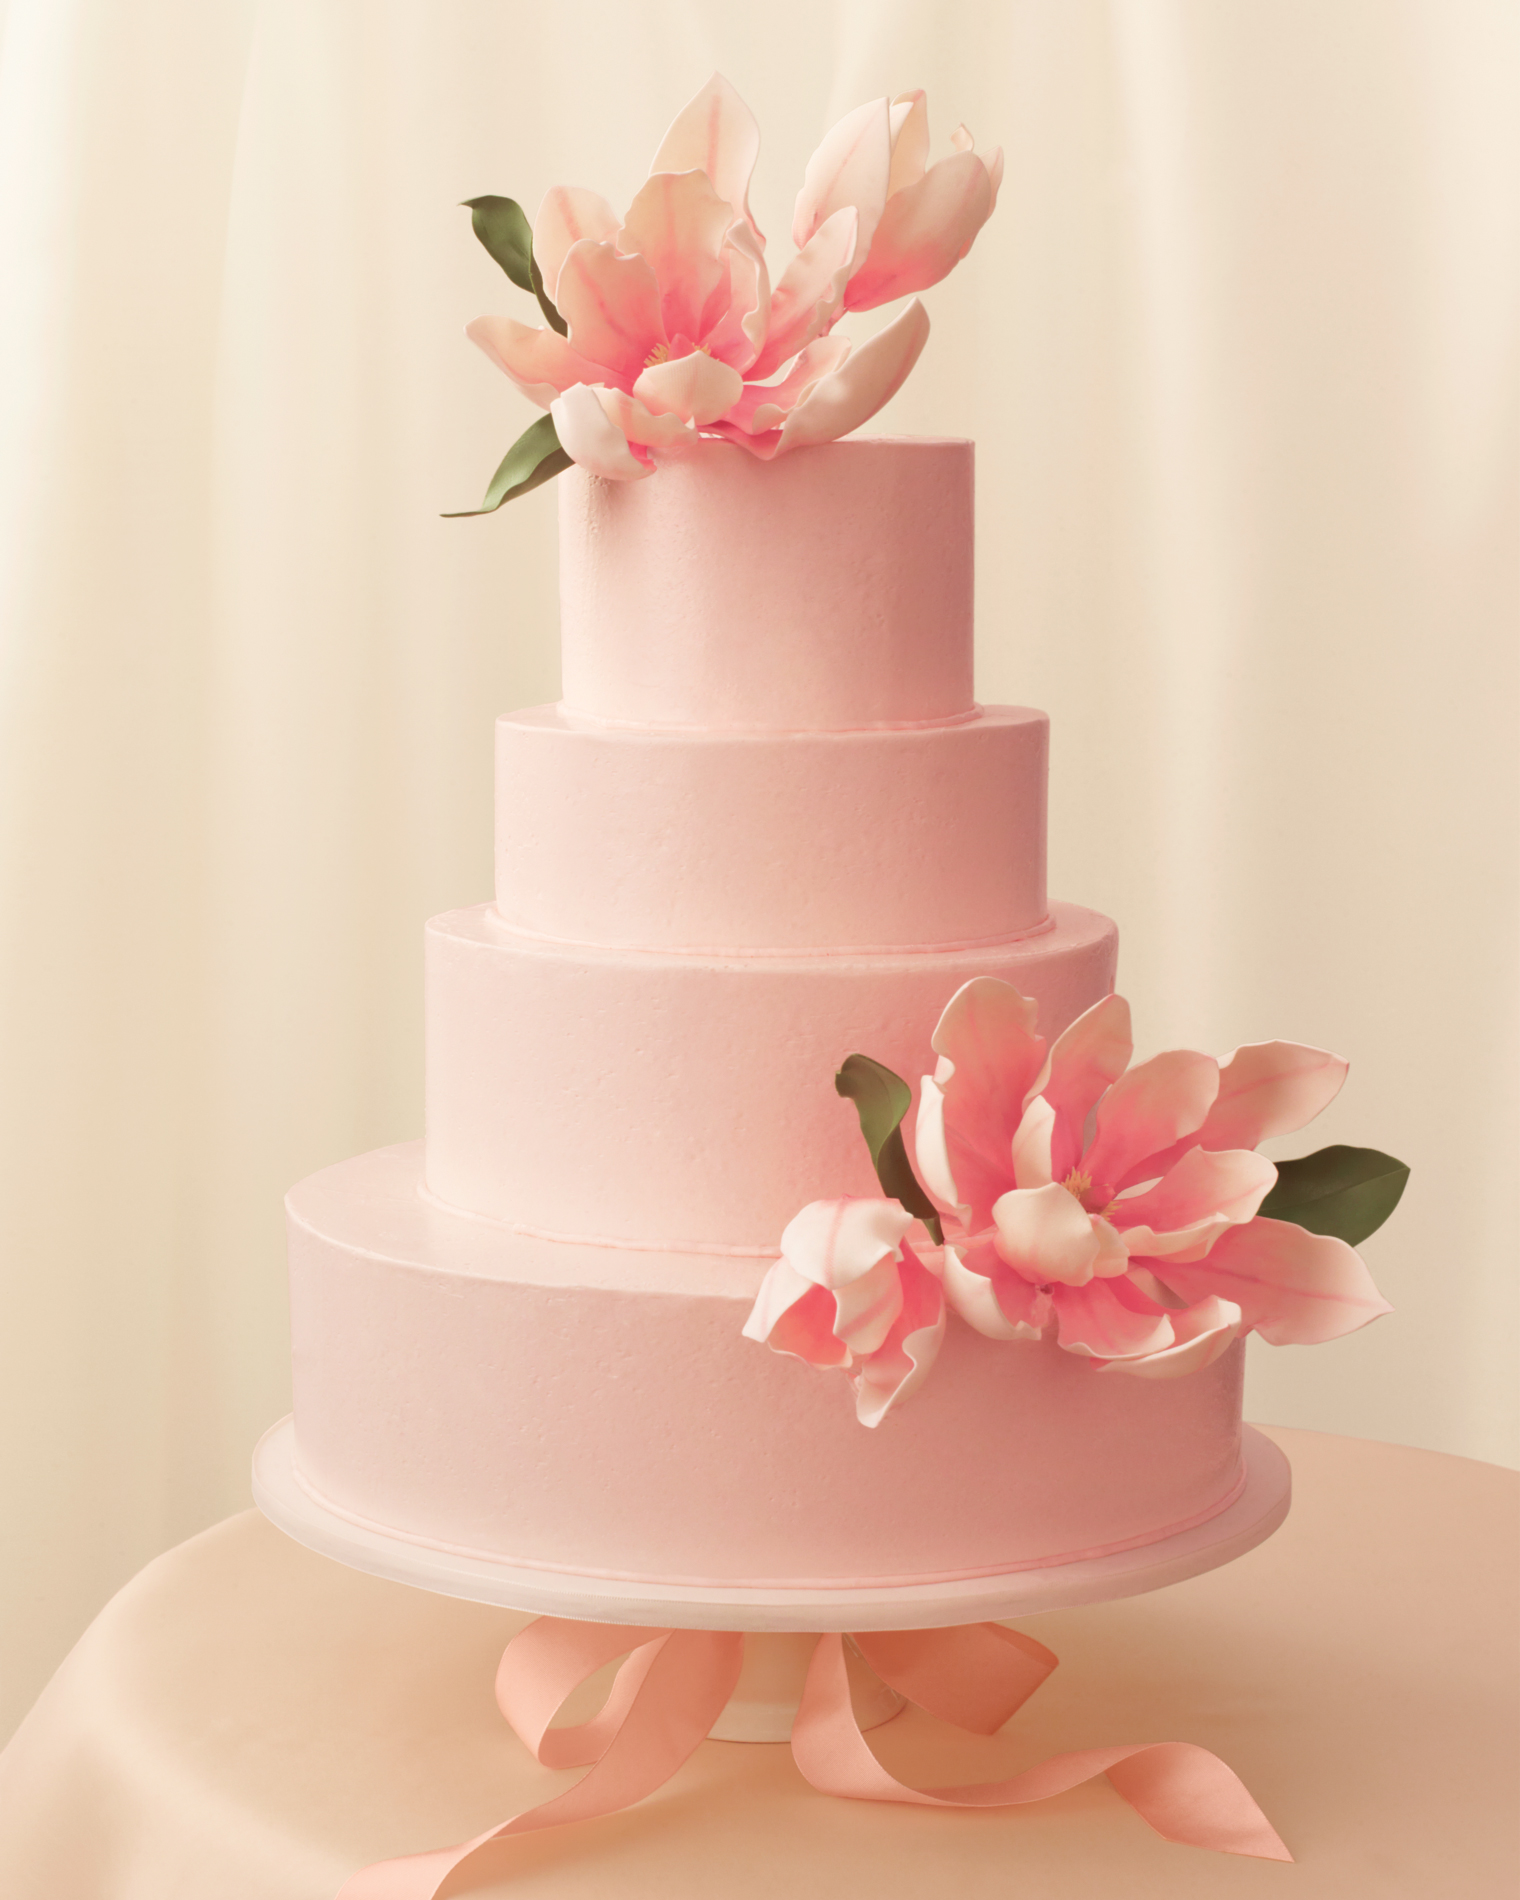 romantic-wedding-cake-mwd108277.jpg